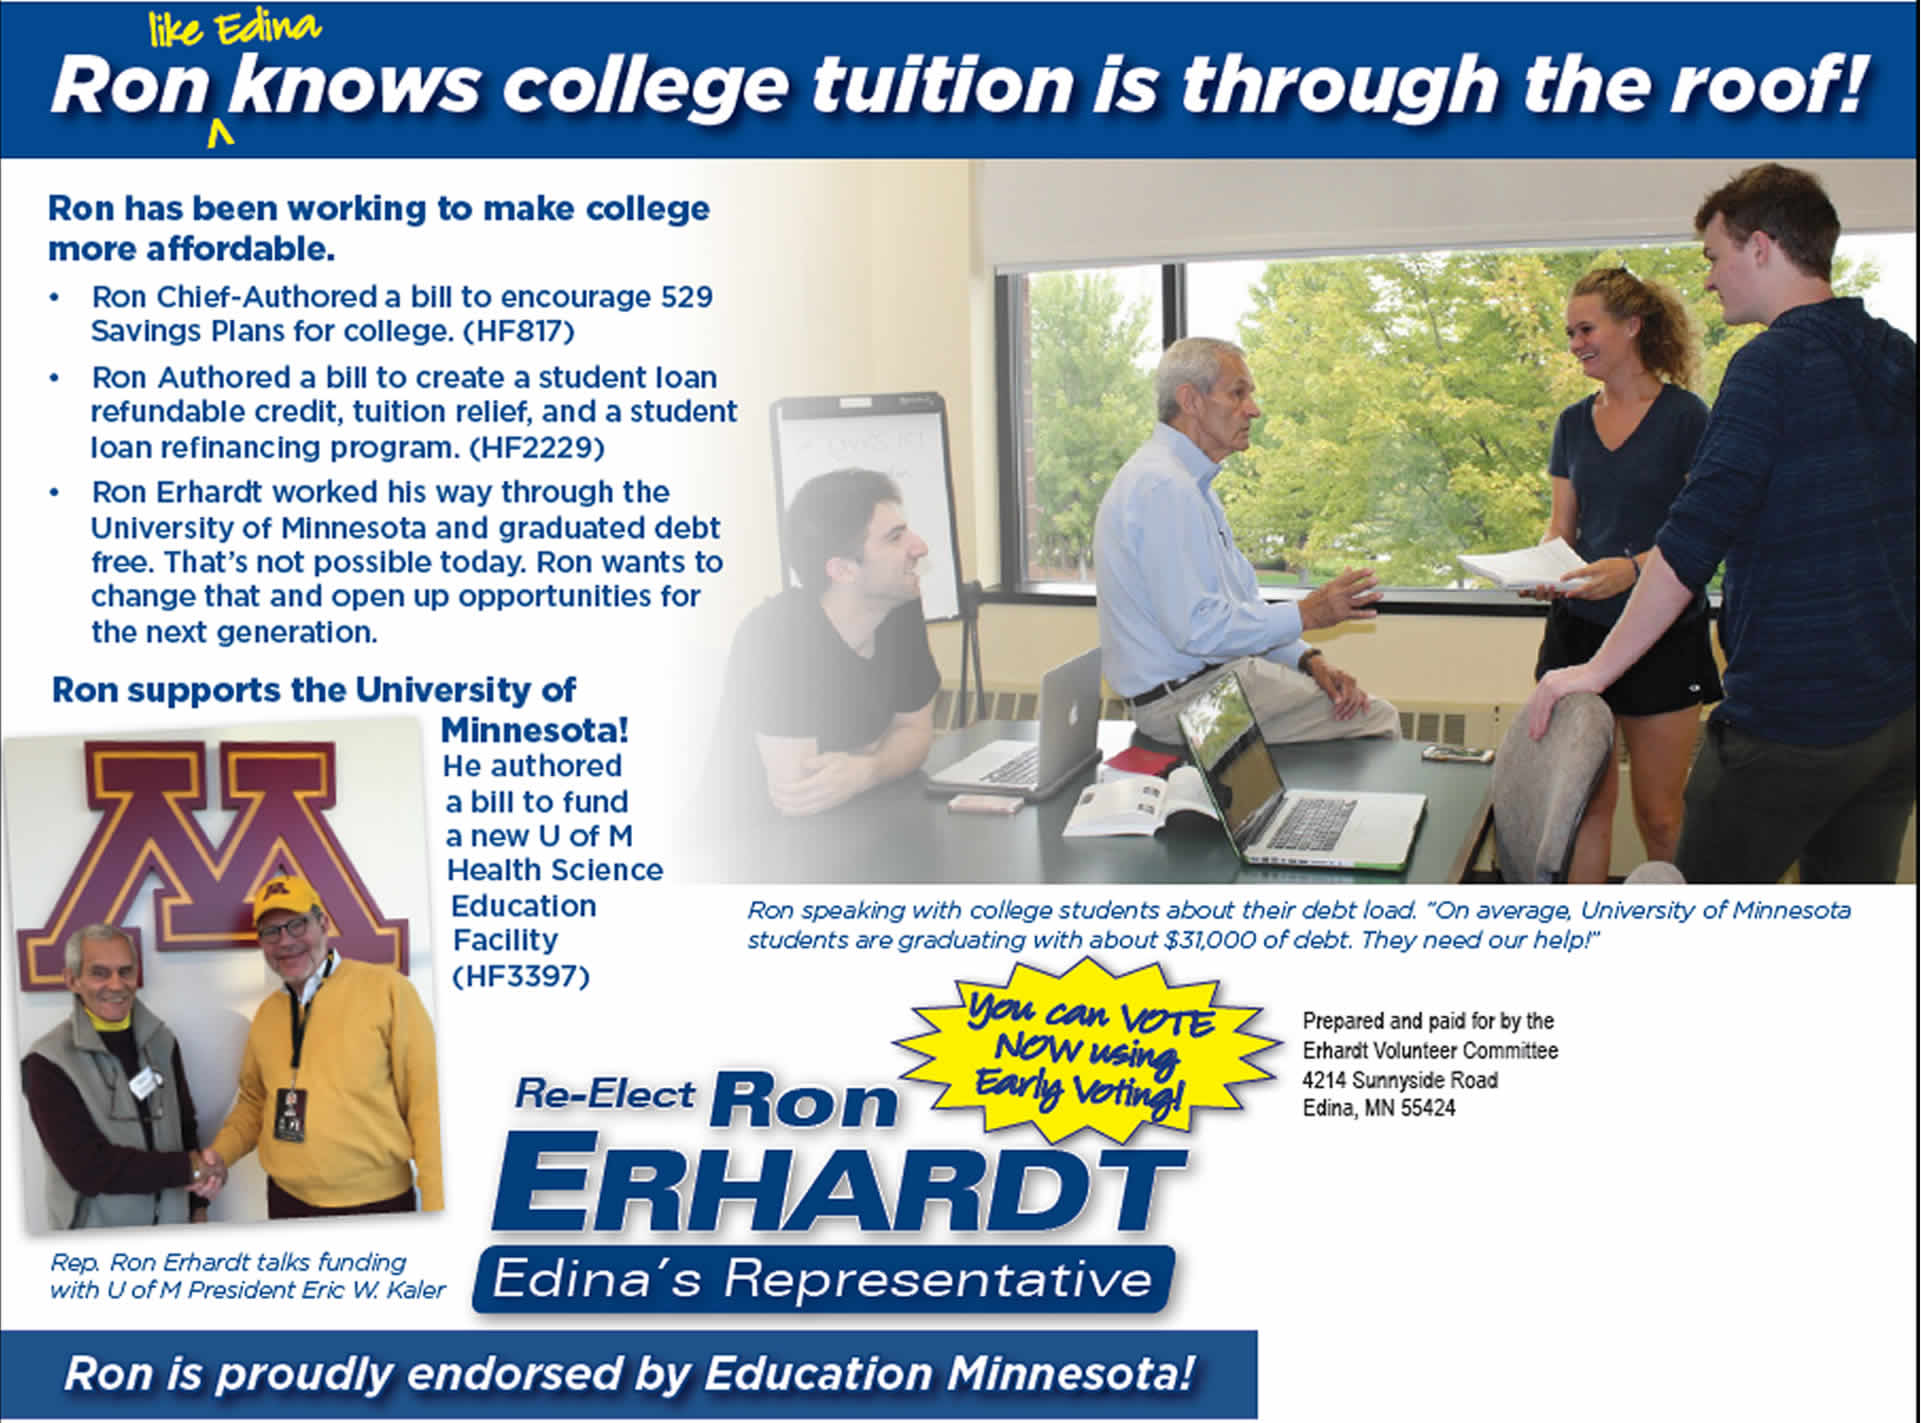 2016_Erhardt_Education-College_1920x1423-Optimized